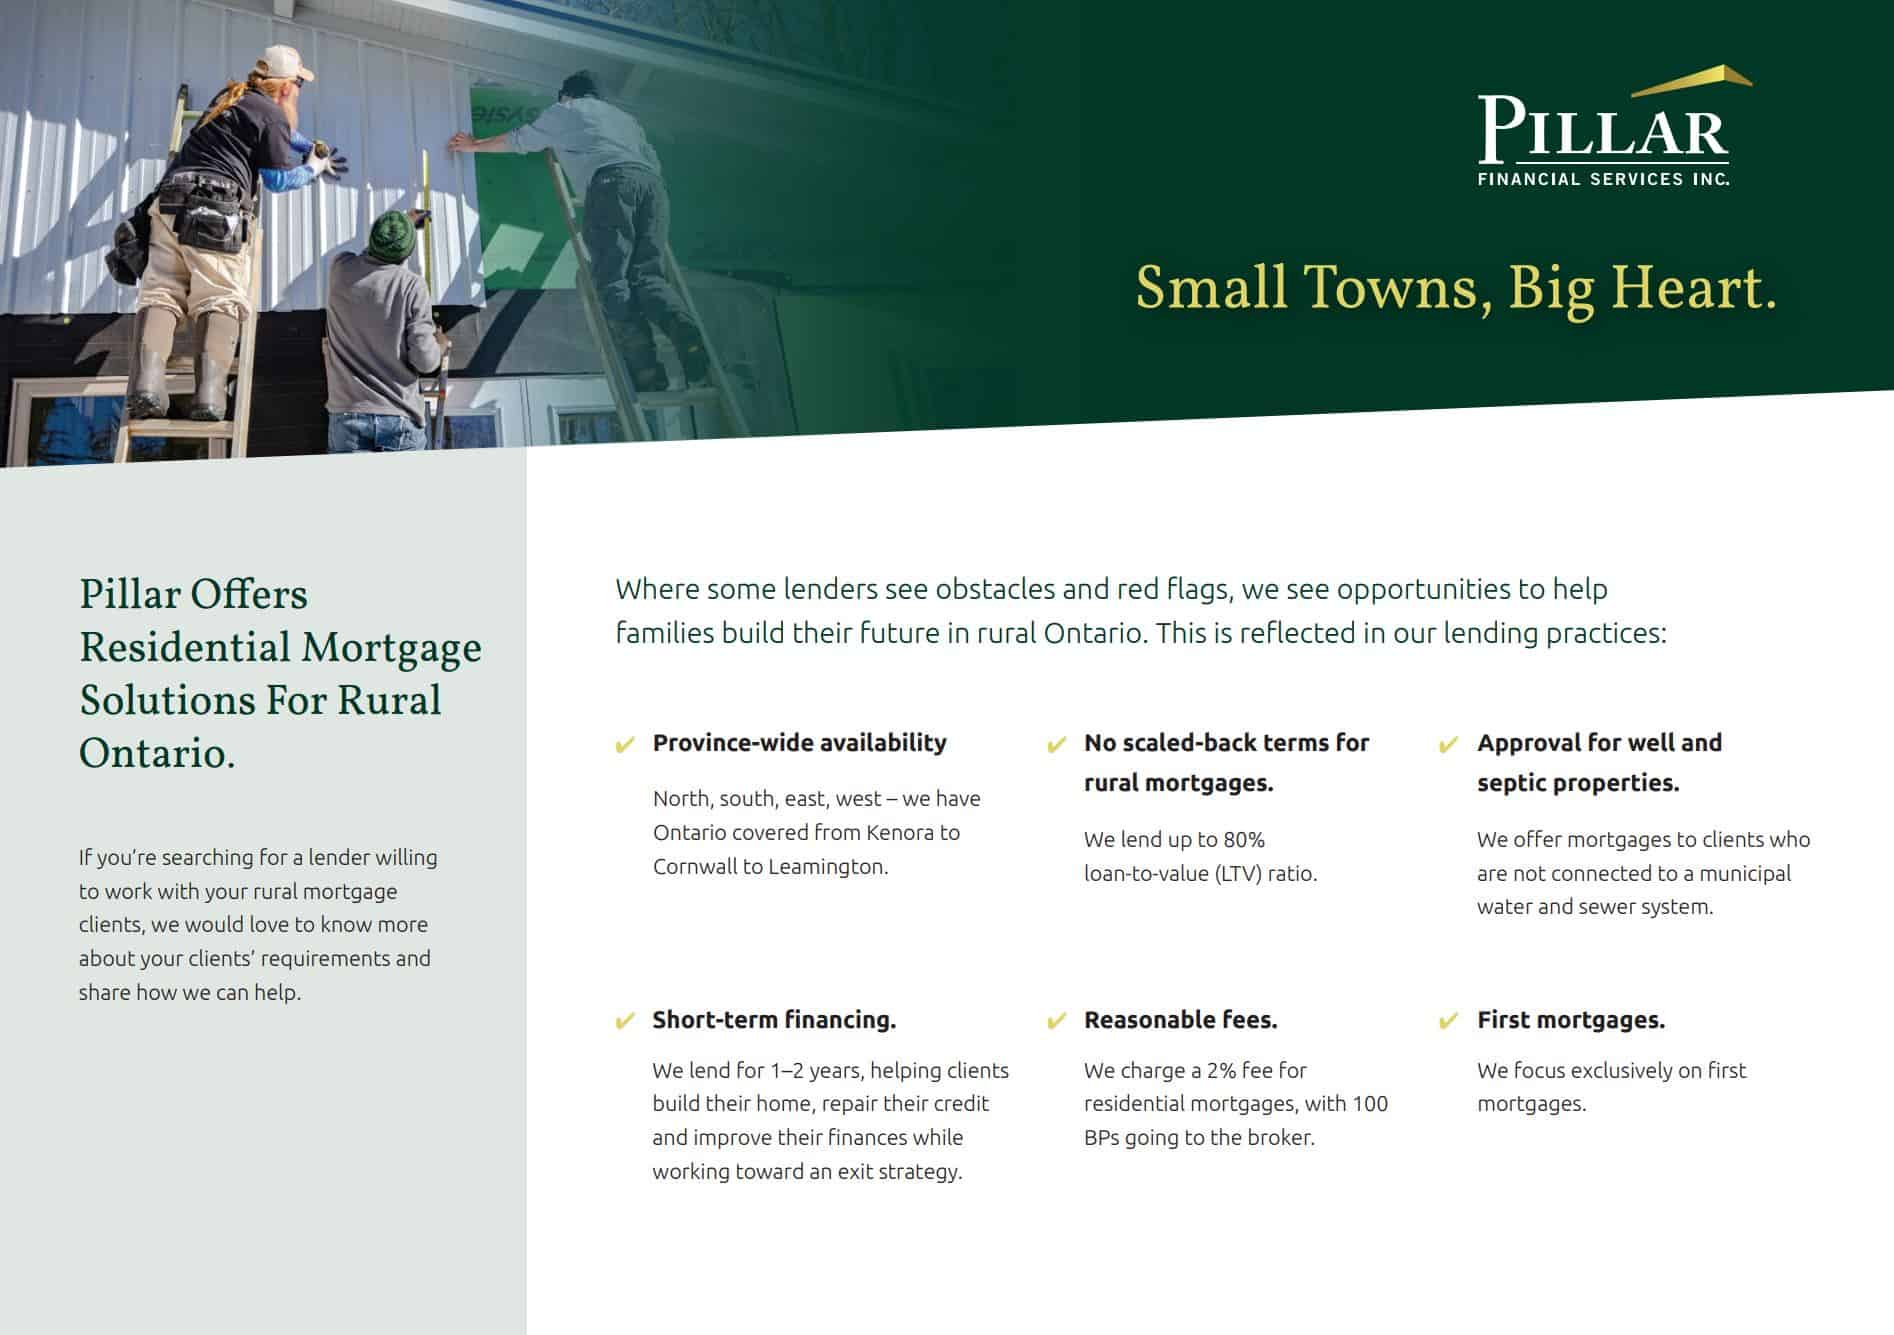 Residential Mortgage Solutions for Rural Ontario